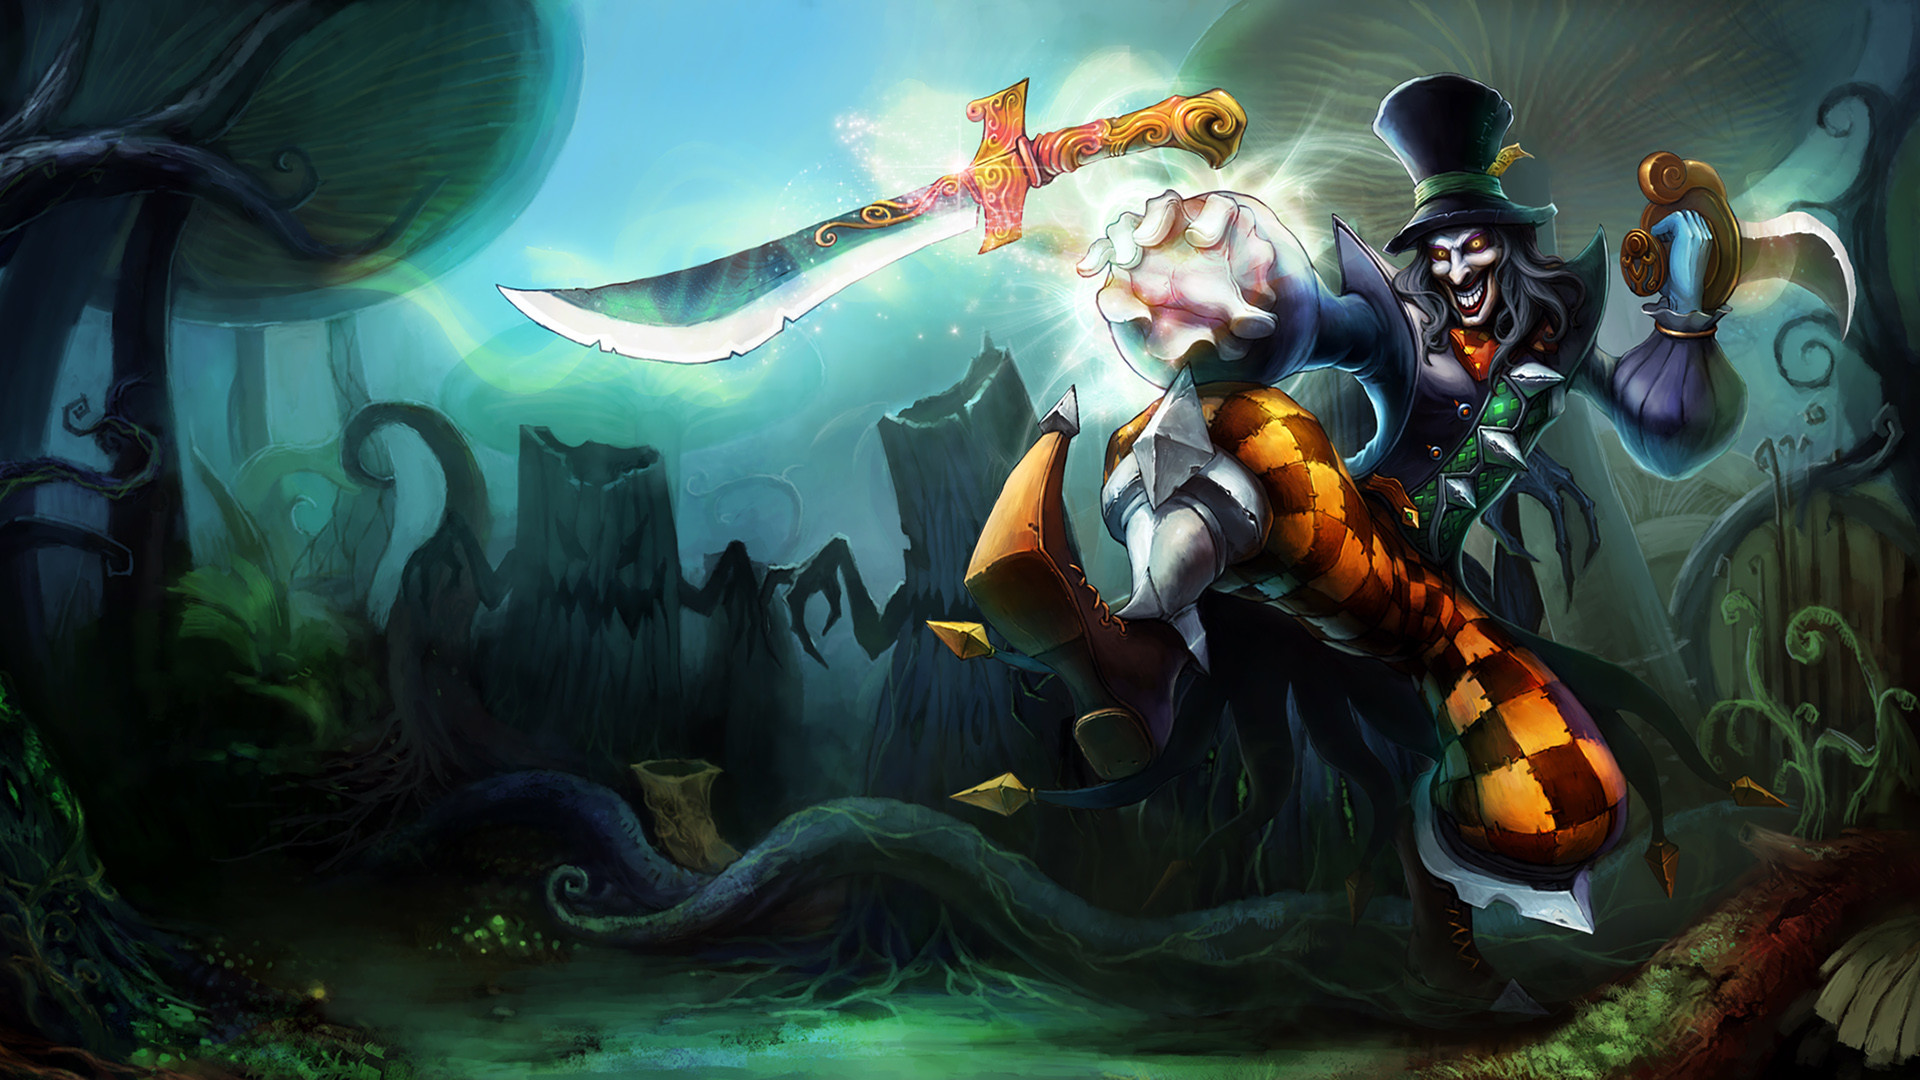 1920x1080 Mad Hatter Shaco Splash Art League of Legends Artwork Wallpaper lol